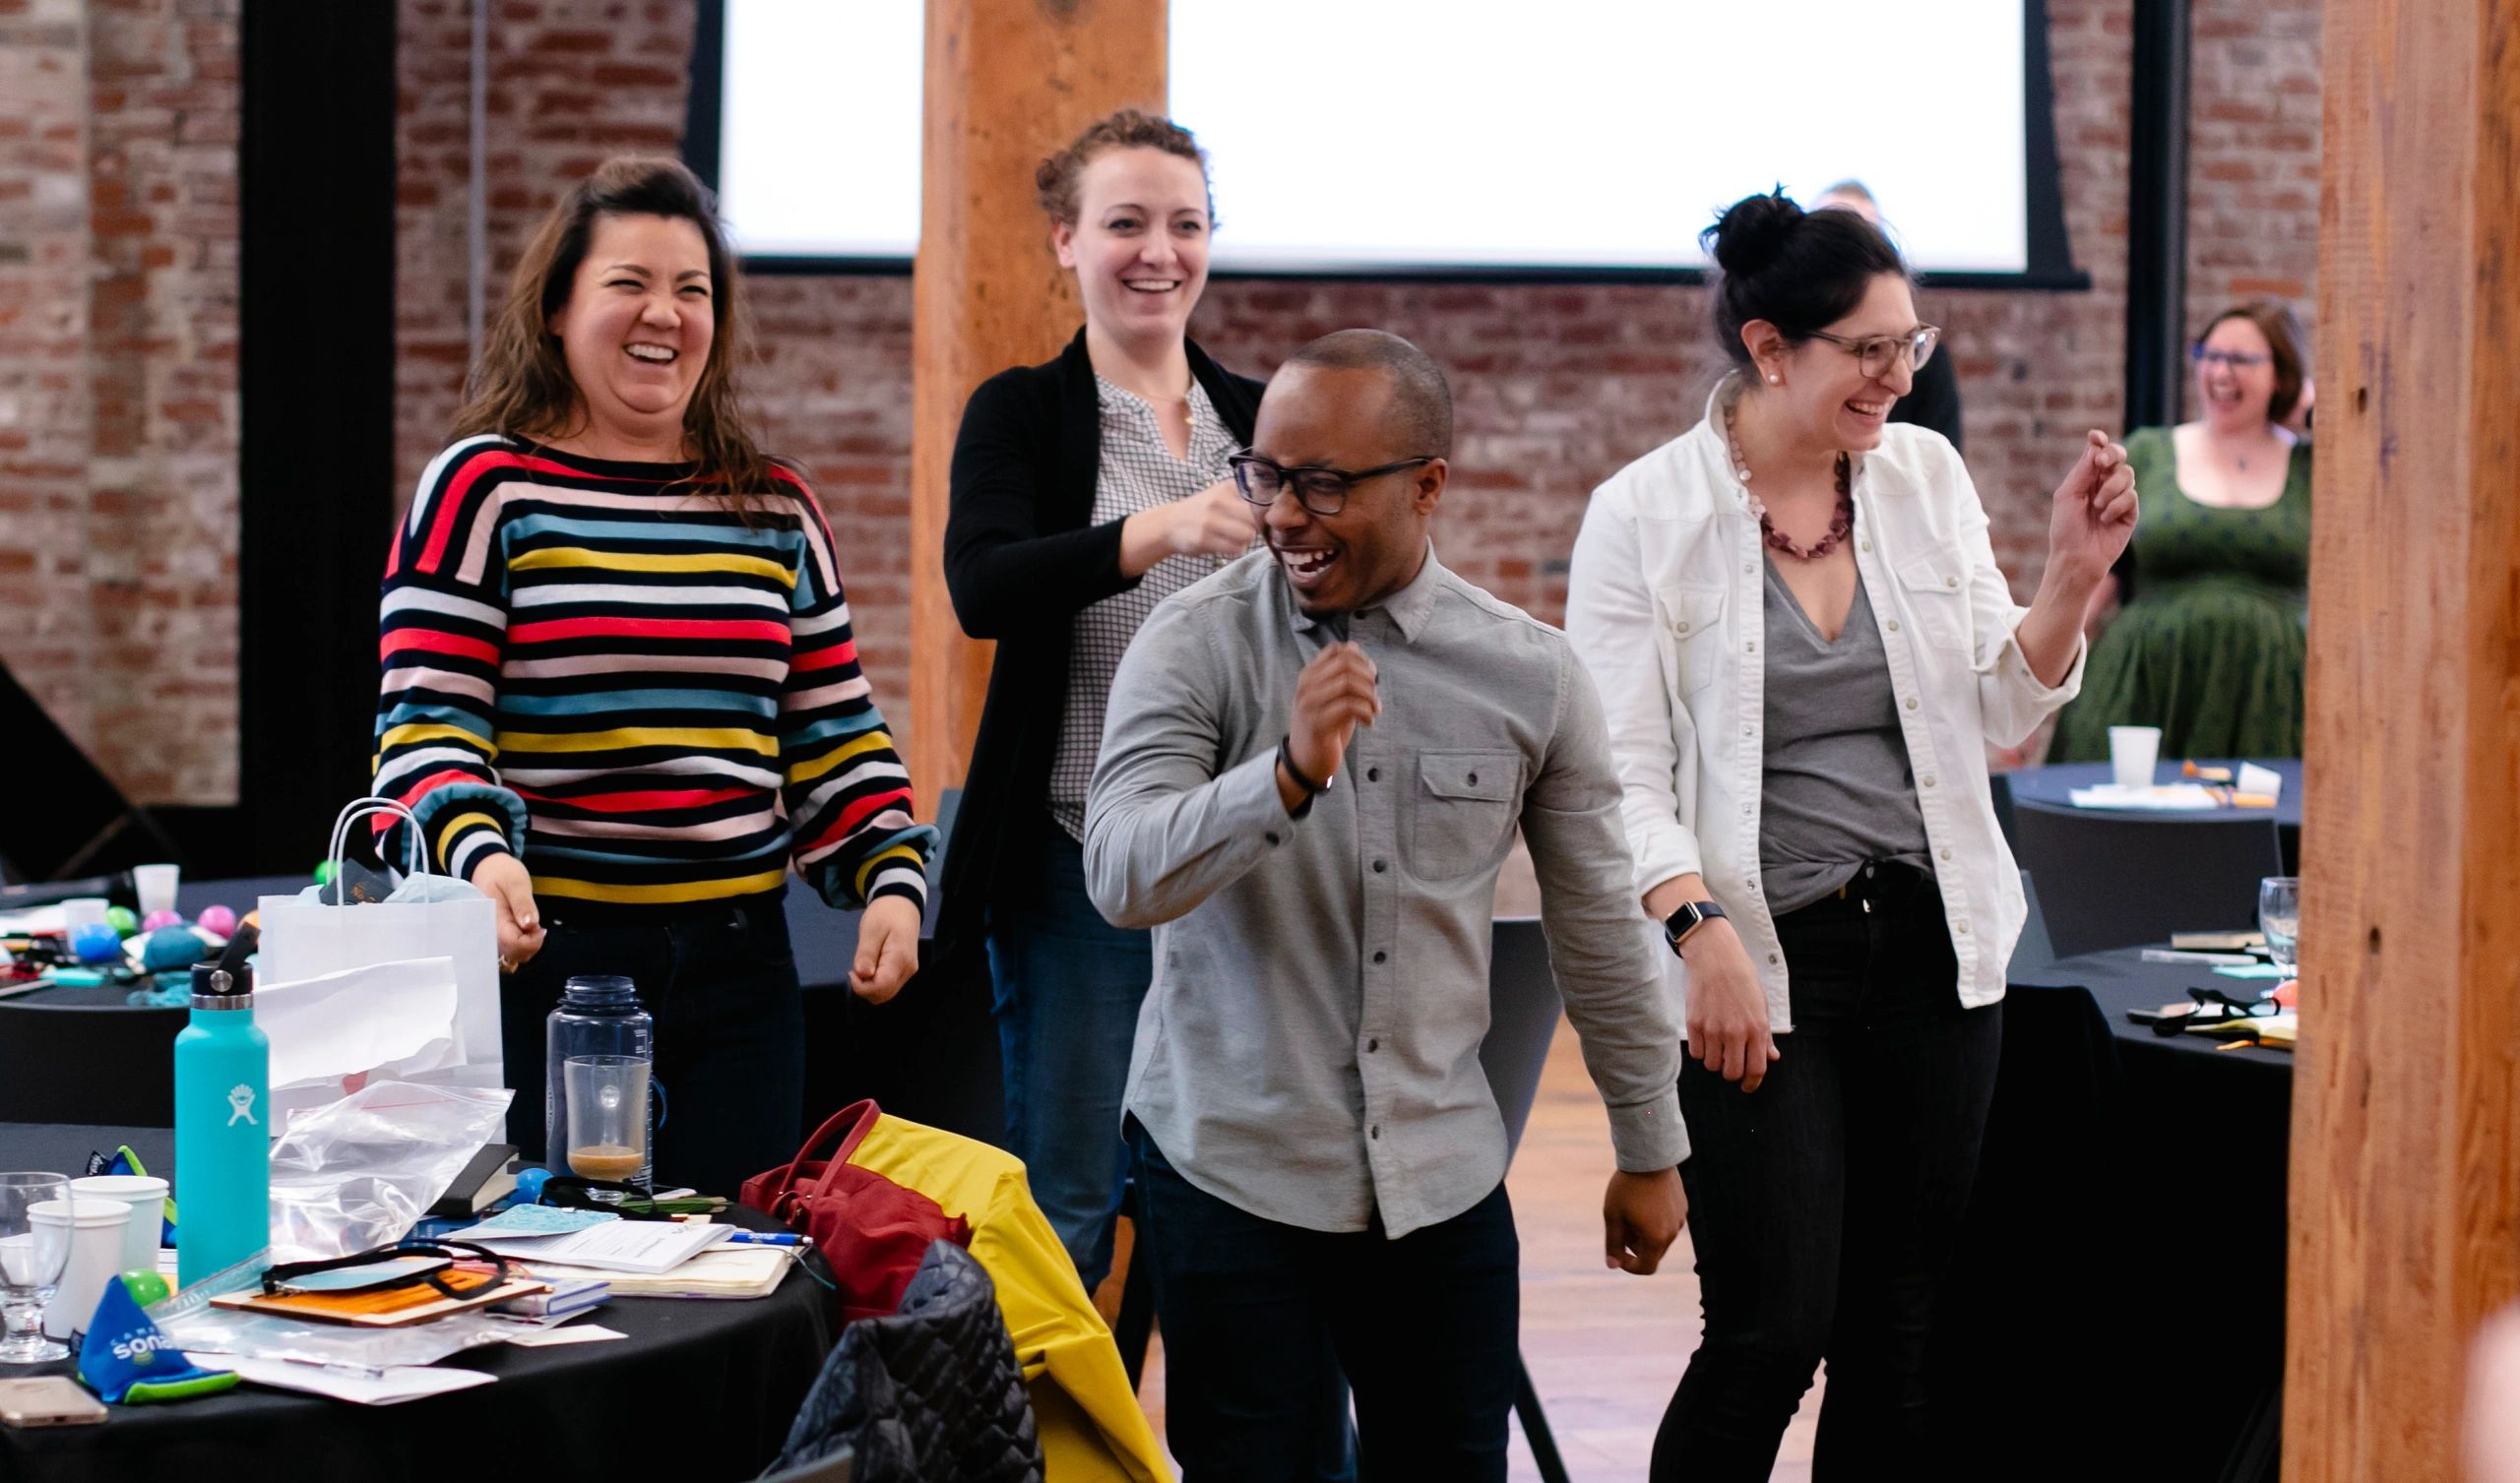 A group of people laughing and moving their bodies at an employee development training.